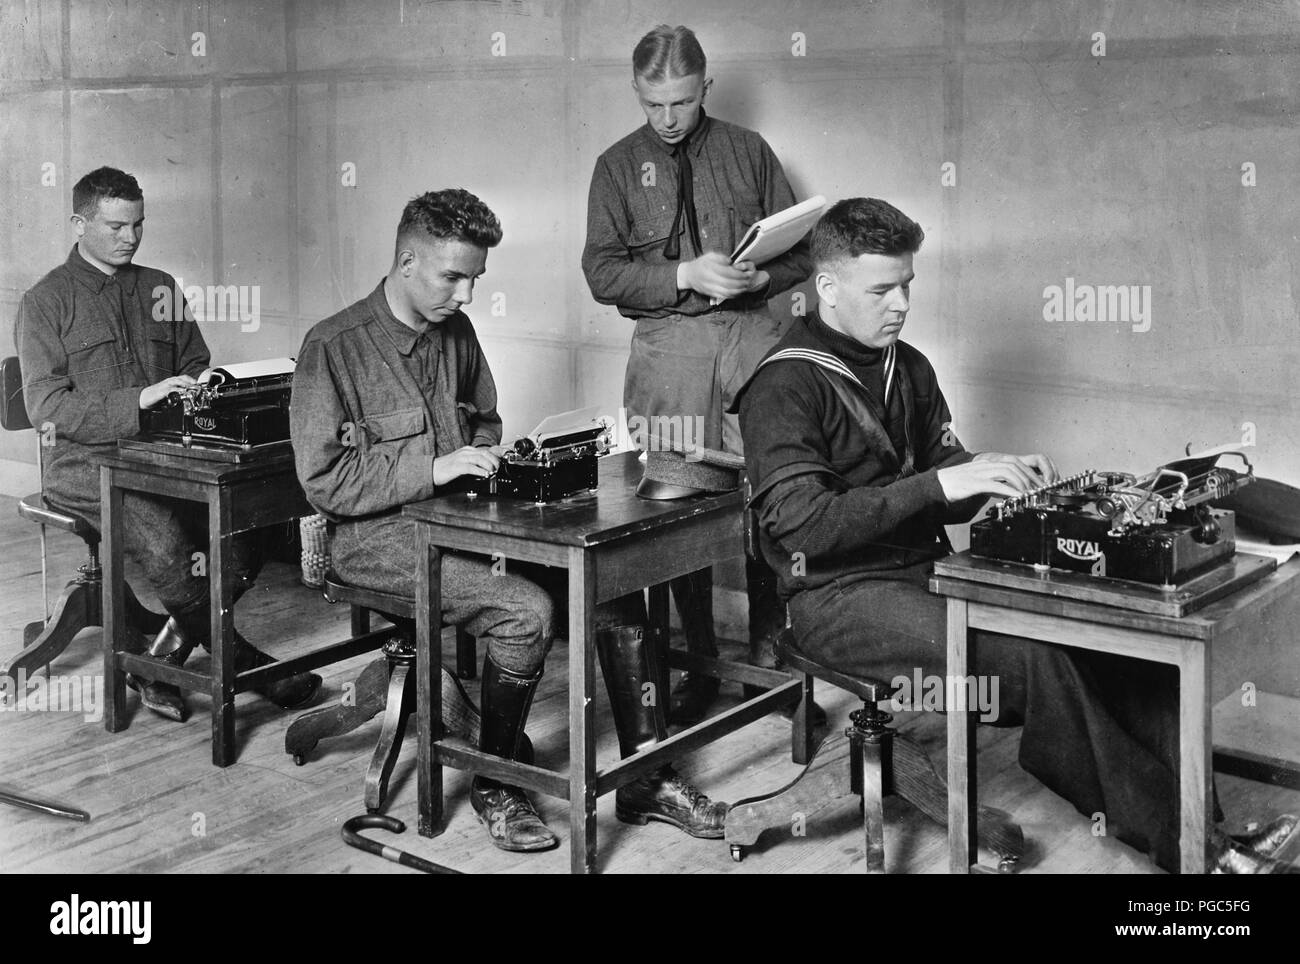 Typewriting. The blind can use any typewriter, no special devices are necessary. If the so called 'touch system' of writing, which requires those who see not to look at the keys, it is equally good for those who can not see the keyboard. Baltimore, Maryland. 1918 - Stock Image